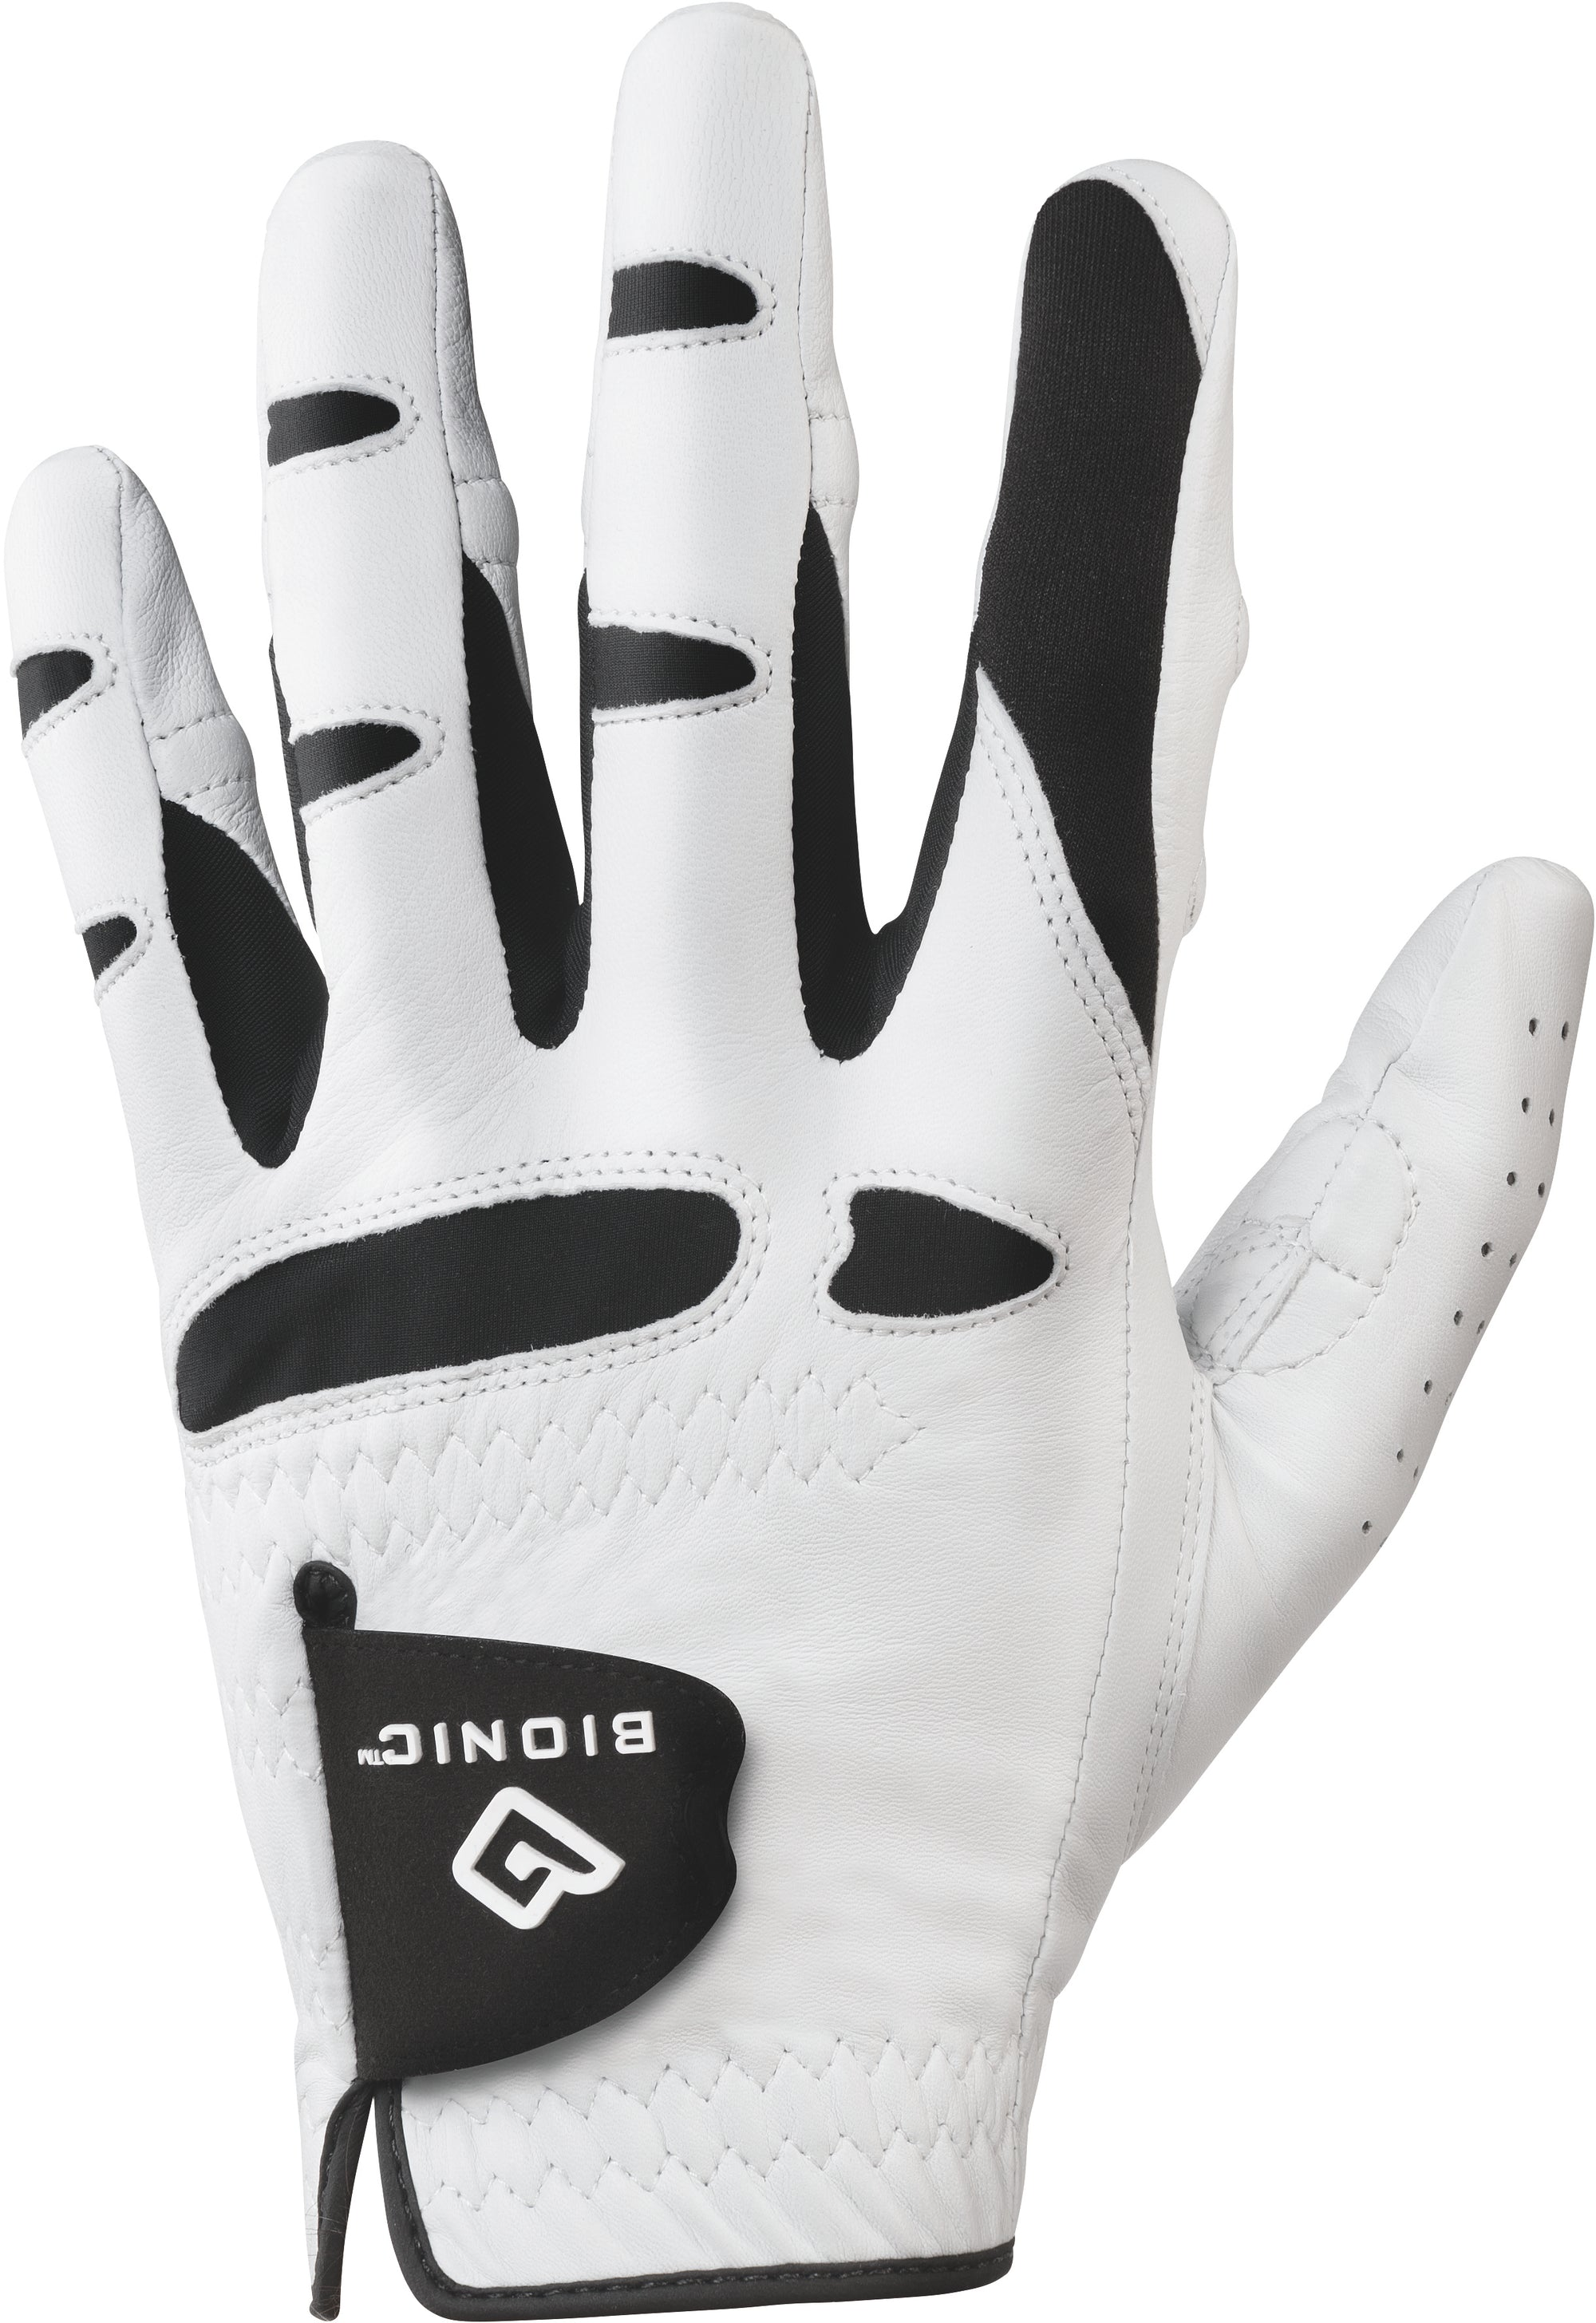 Bionic - StableGrip Golf Glove - White